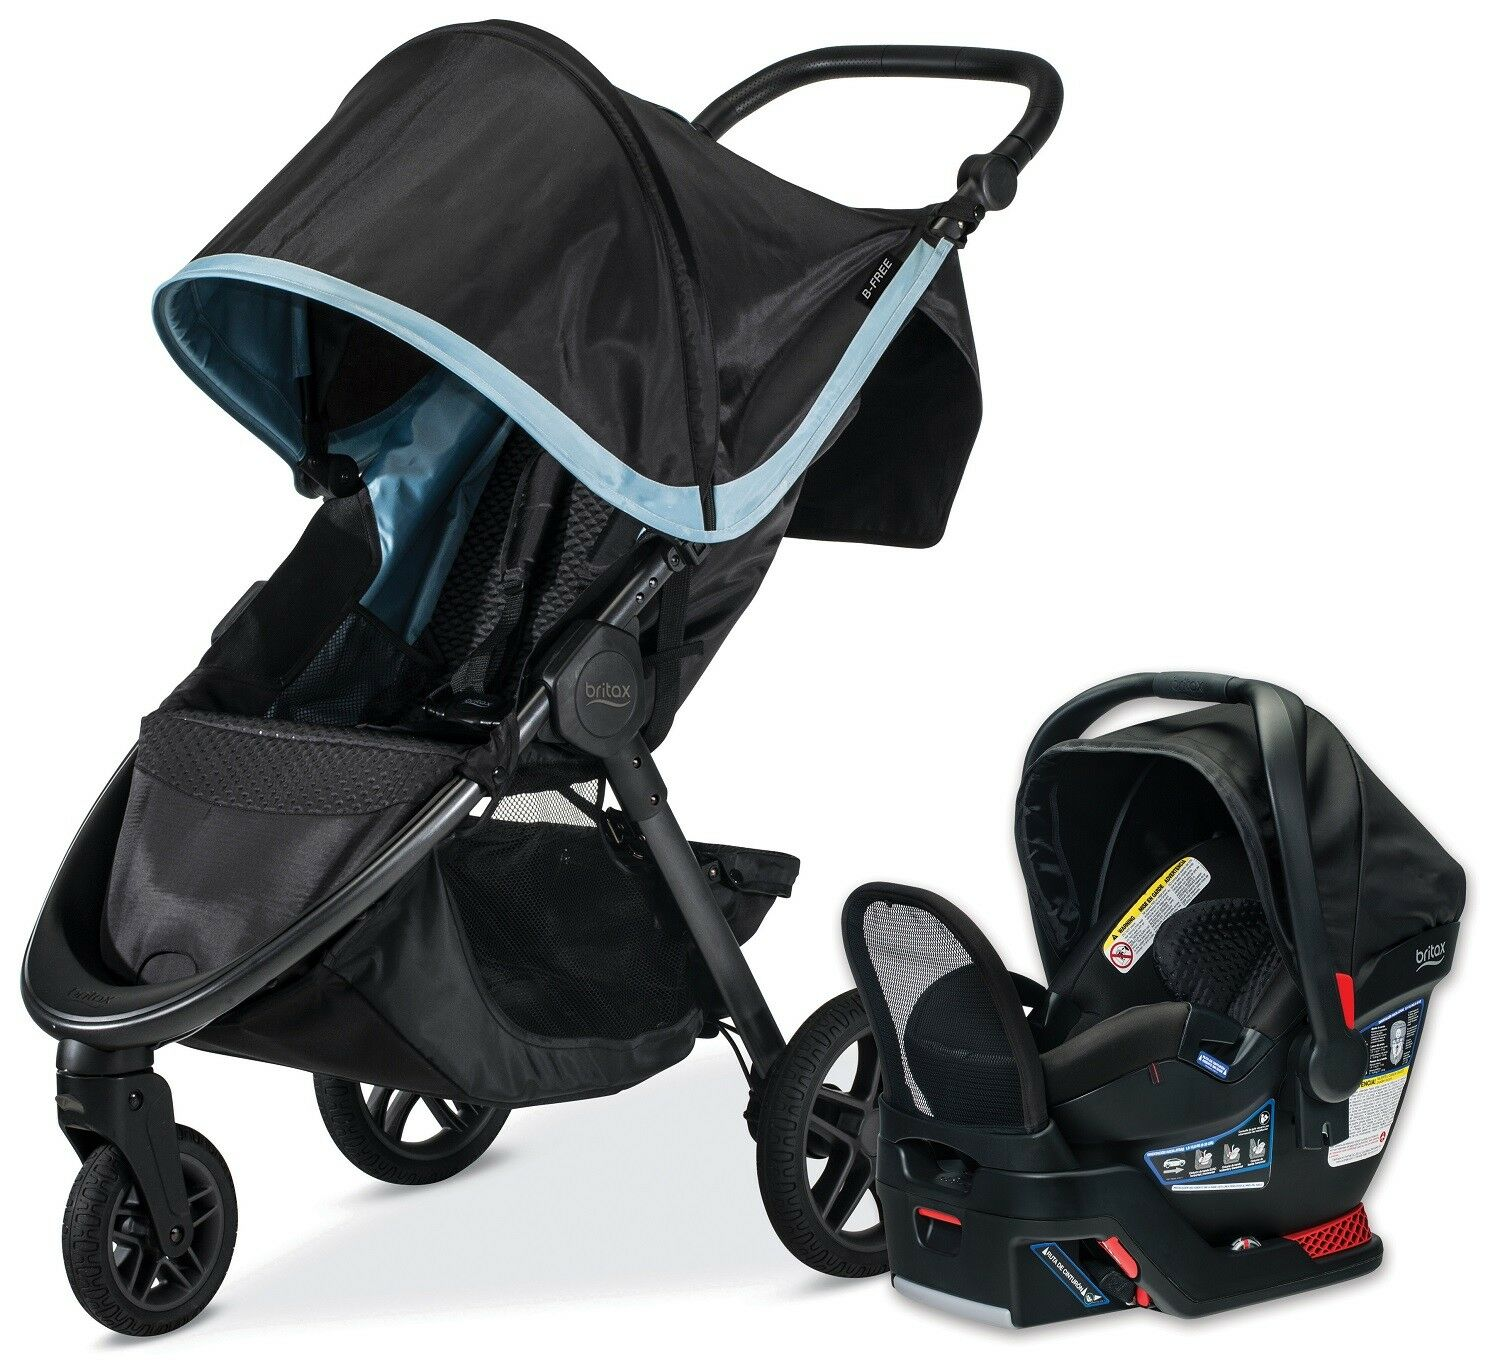 Britax Car Seat With Stroller Britax B Free Travel System Stroller With Endeavours Infant Car Seat Frost New